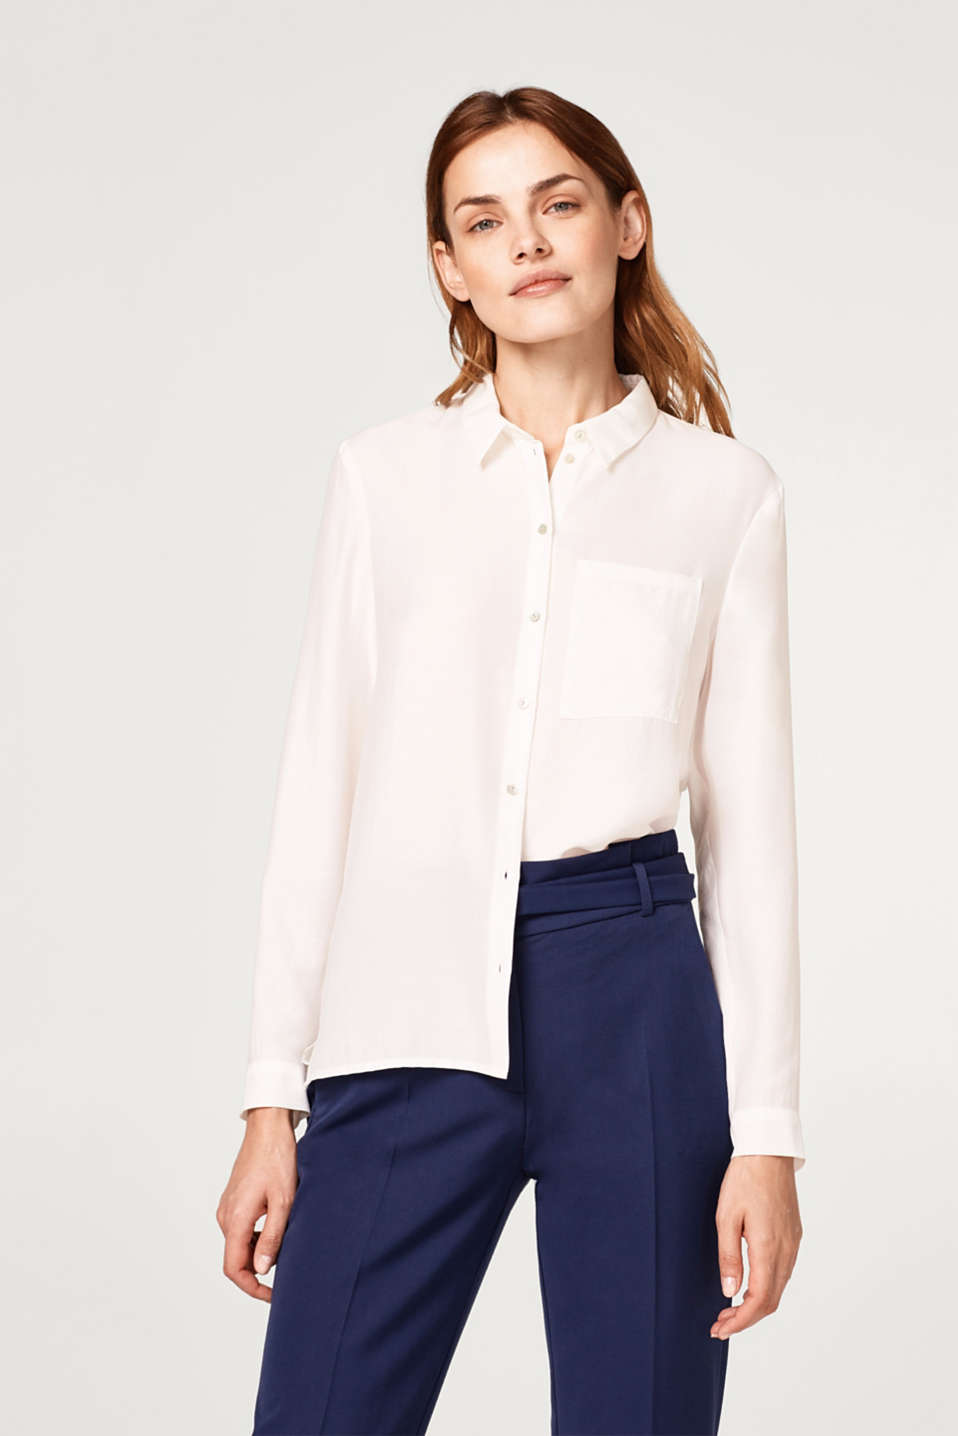 Esprit - Flowing crêpe blouse with a breast pocket